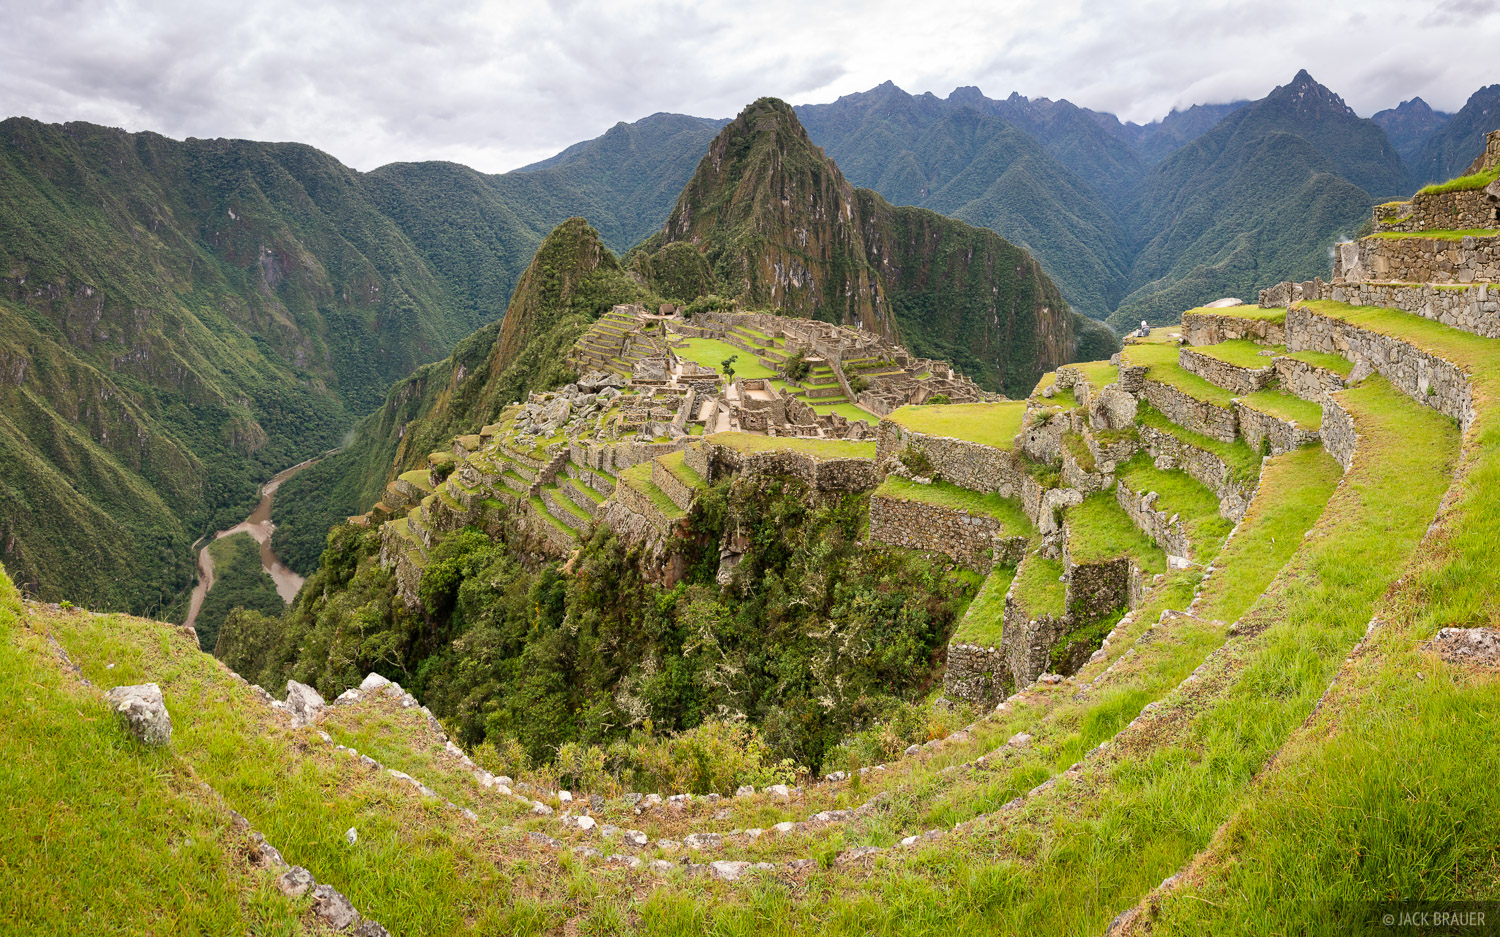 Cordillera Vilcabamba, Macchu Picchu, Peru, South America, photo